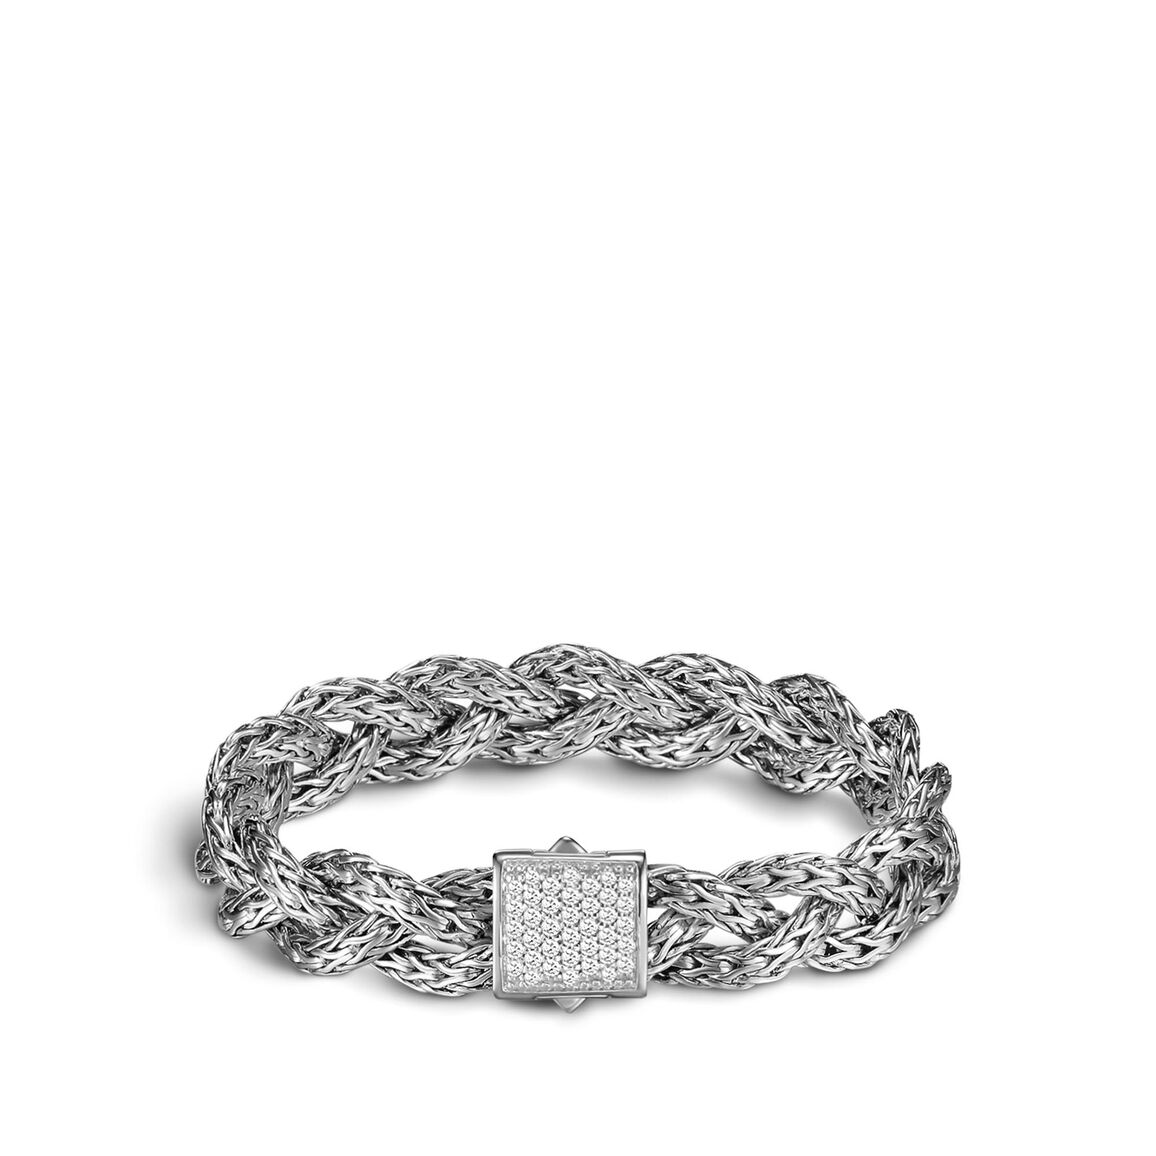 Braided Chain 11MM Bracelet in Silver with Diamonds